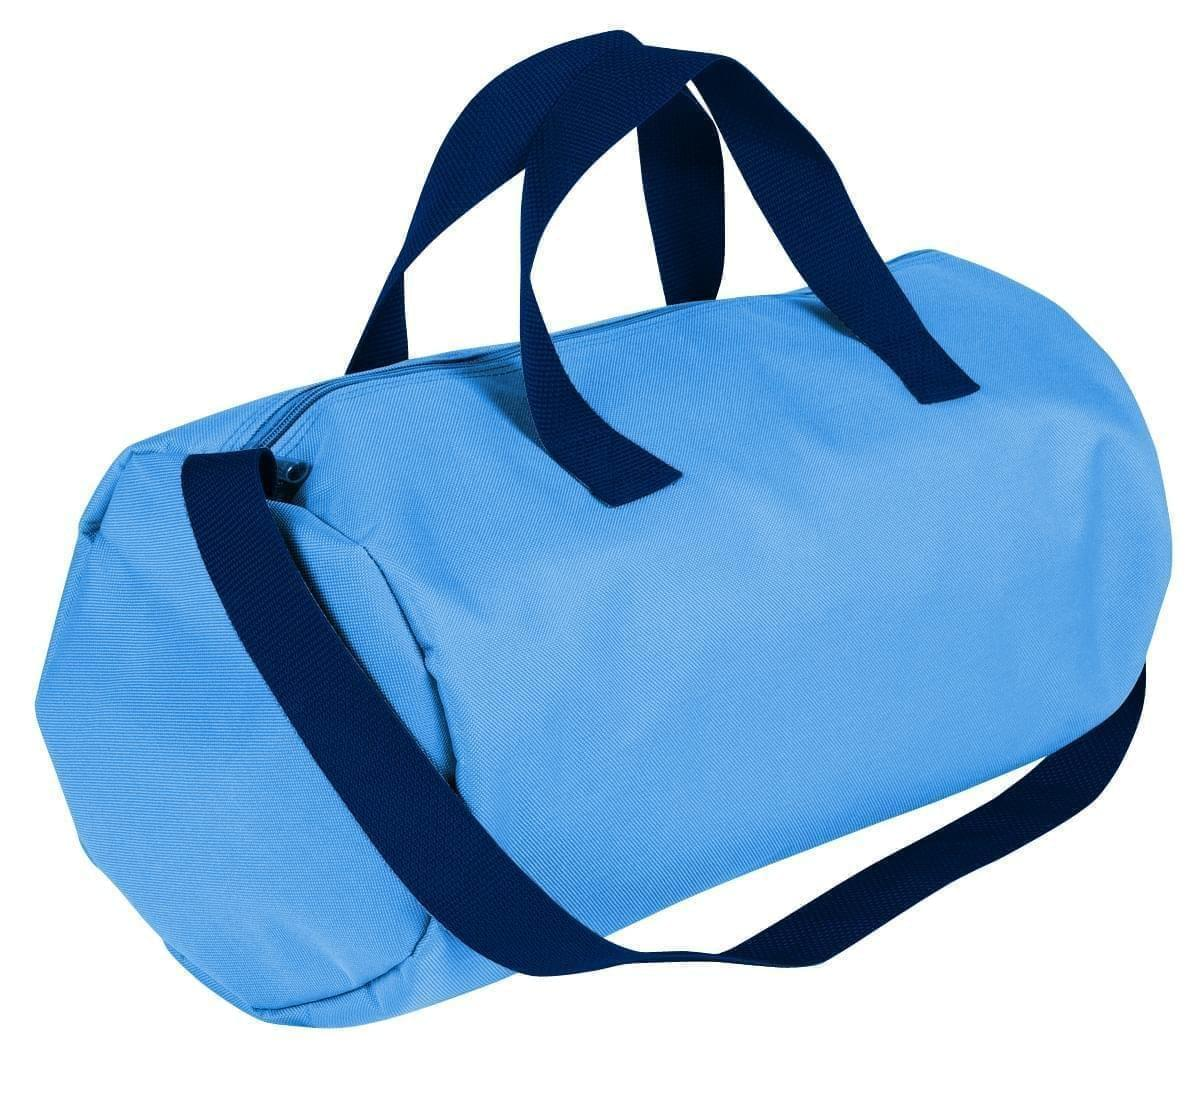 USA Made Nylon Poly Gym Roll Bags, Columbia-Navy, ROCX31AAUZ